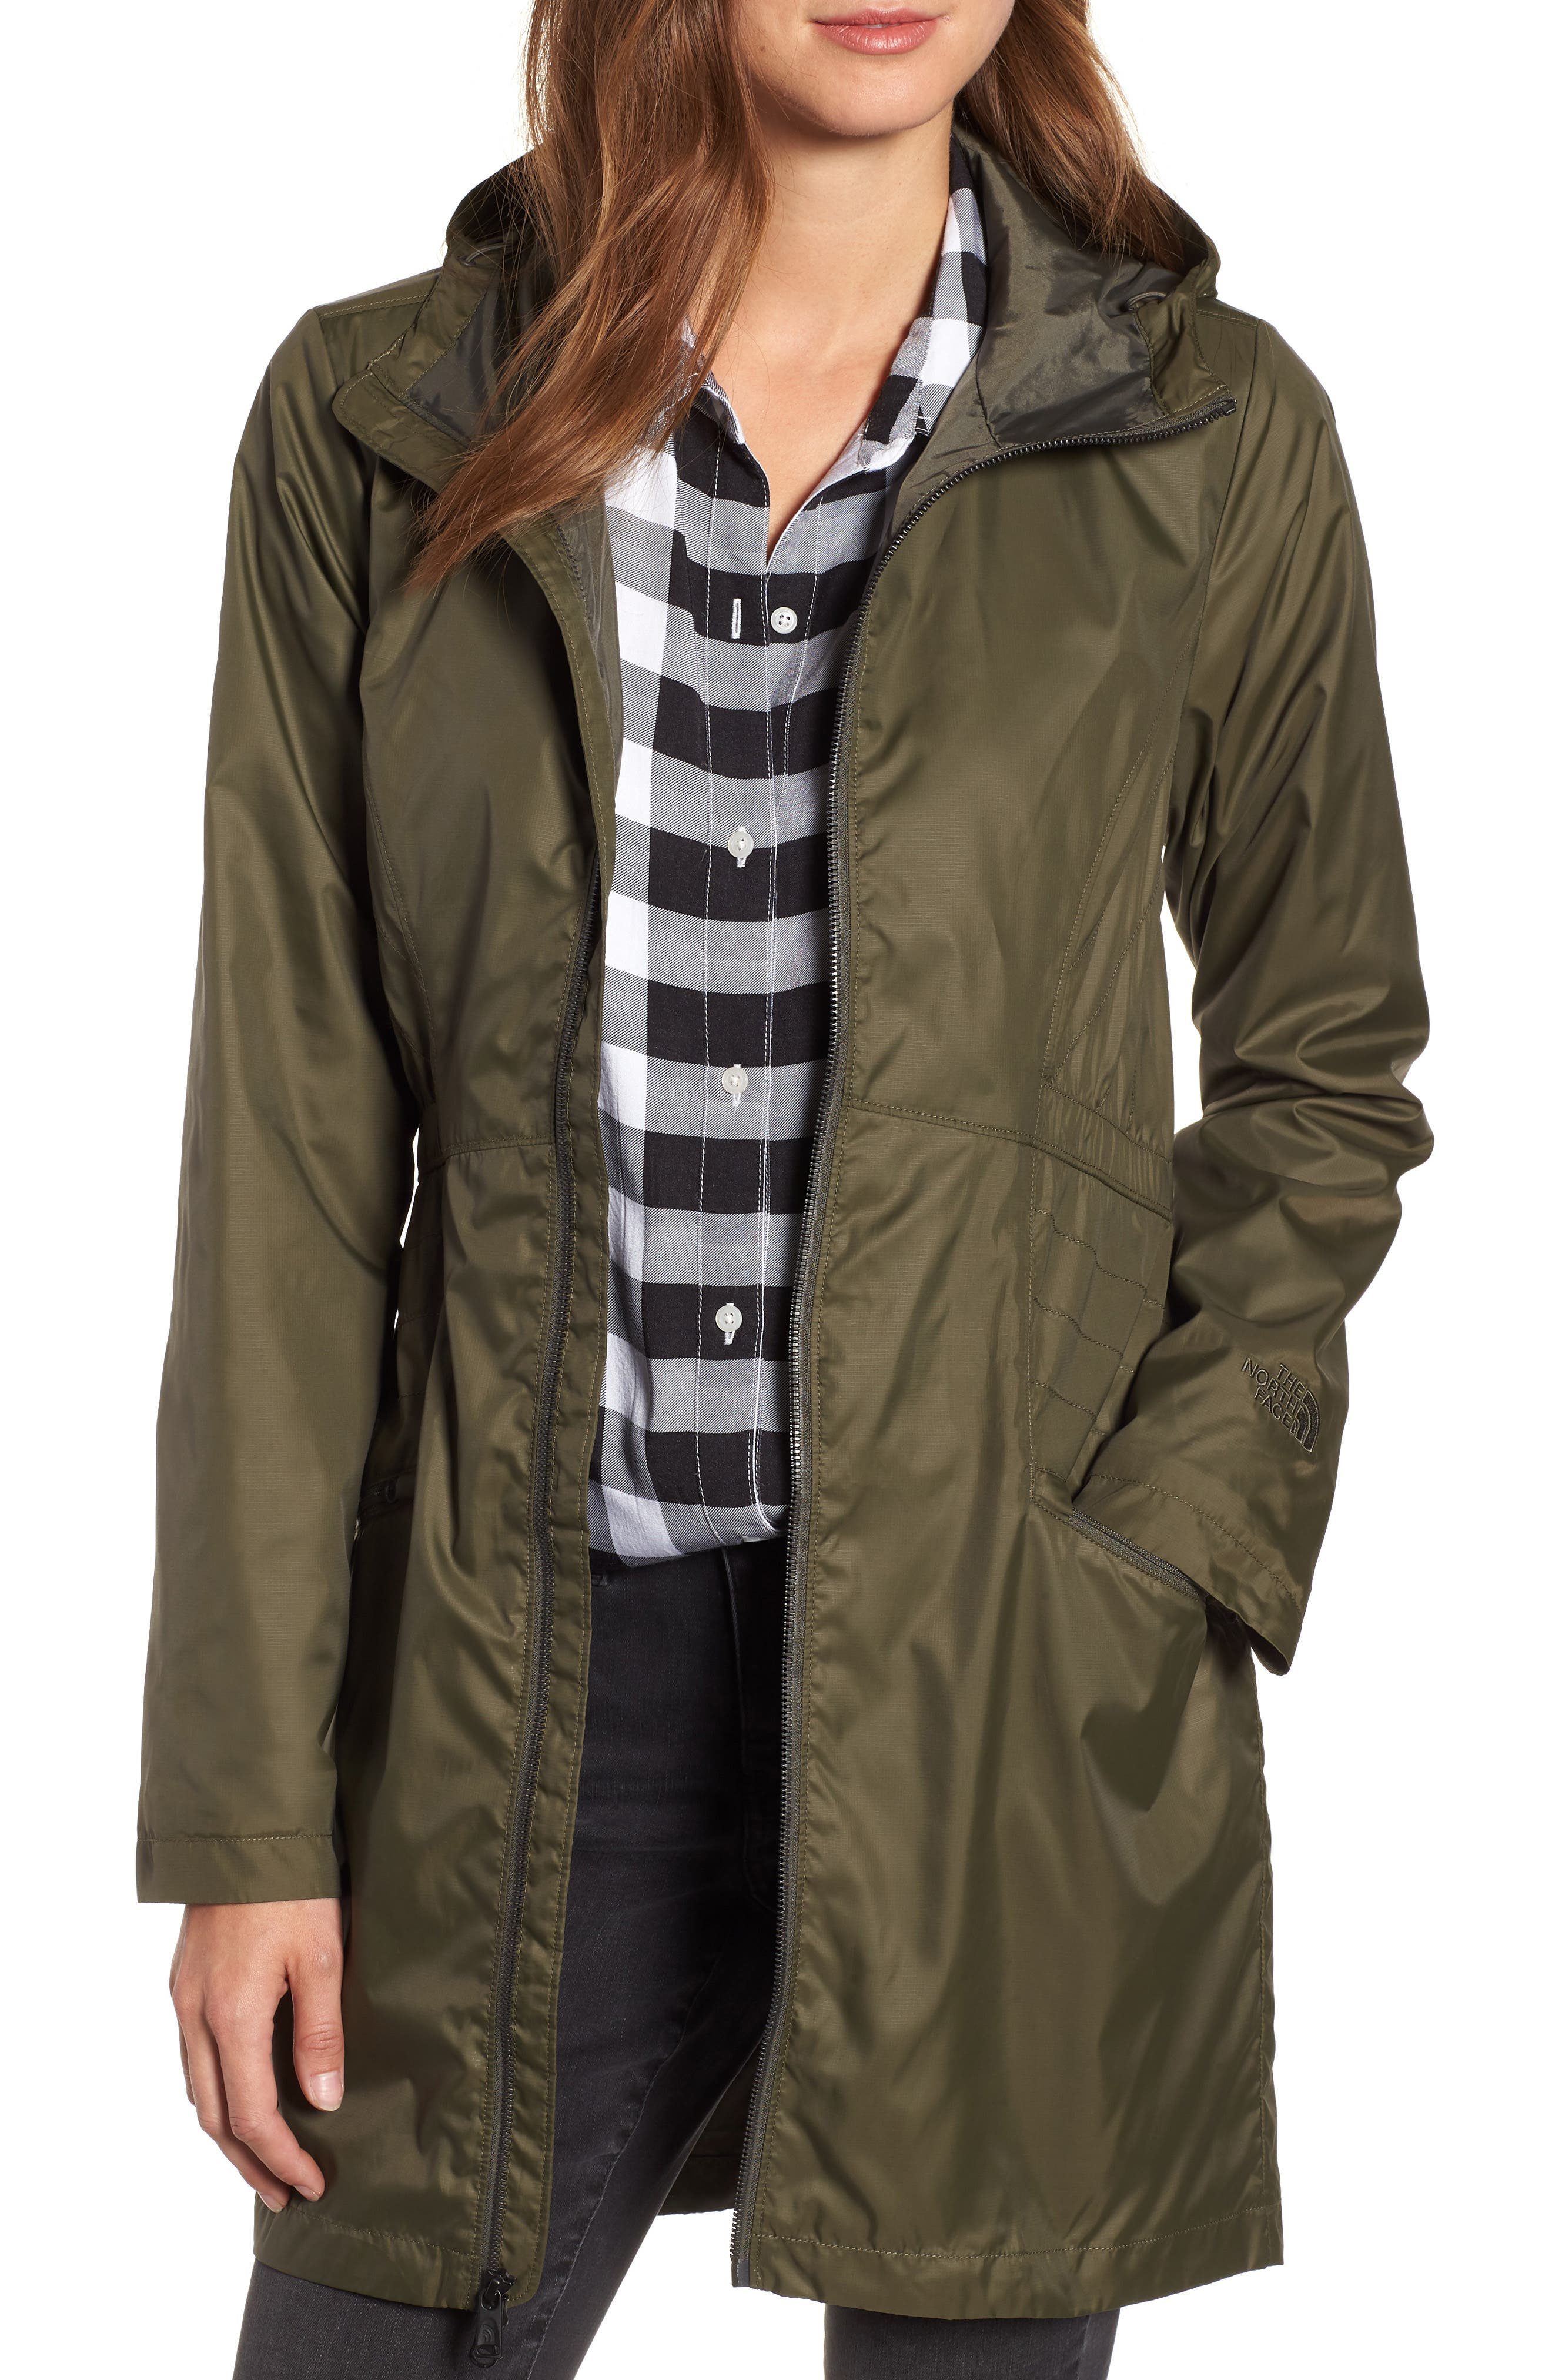 THE NORTH FACE, Rissy 2 Wind Resistant Jacket, Main thumbnail 1, color, 302